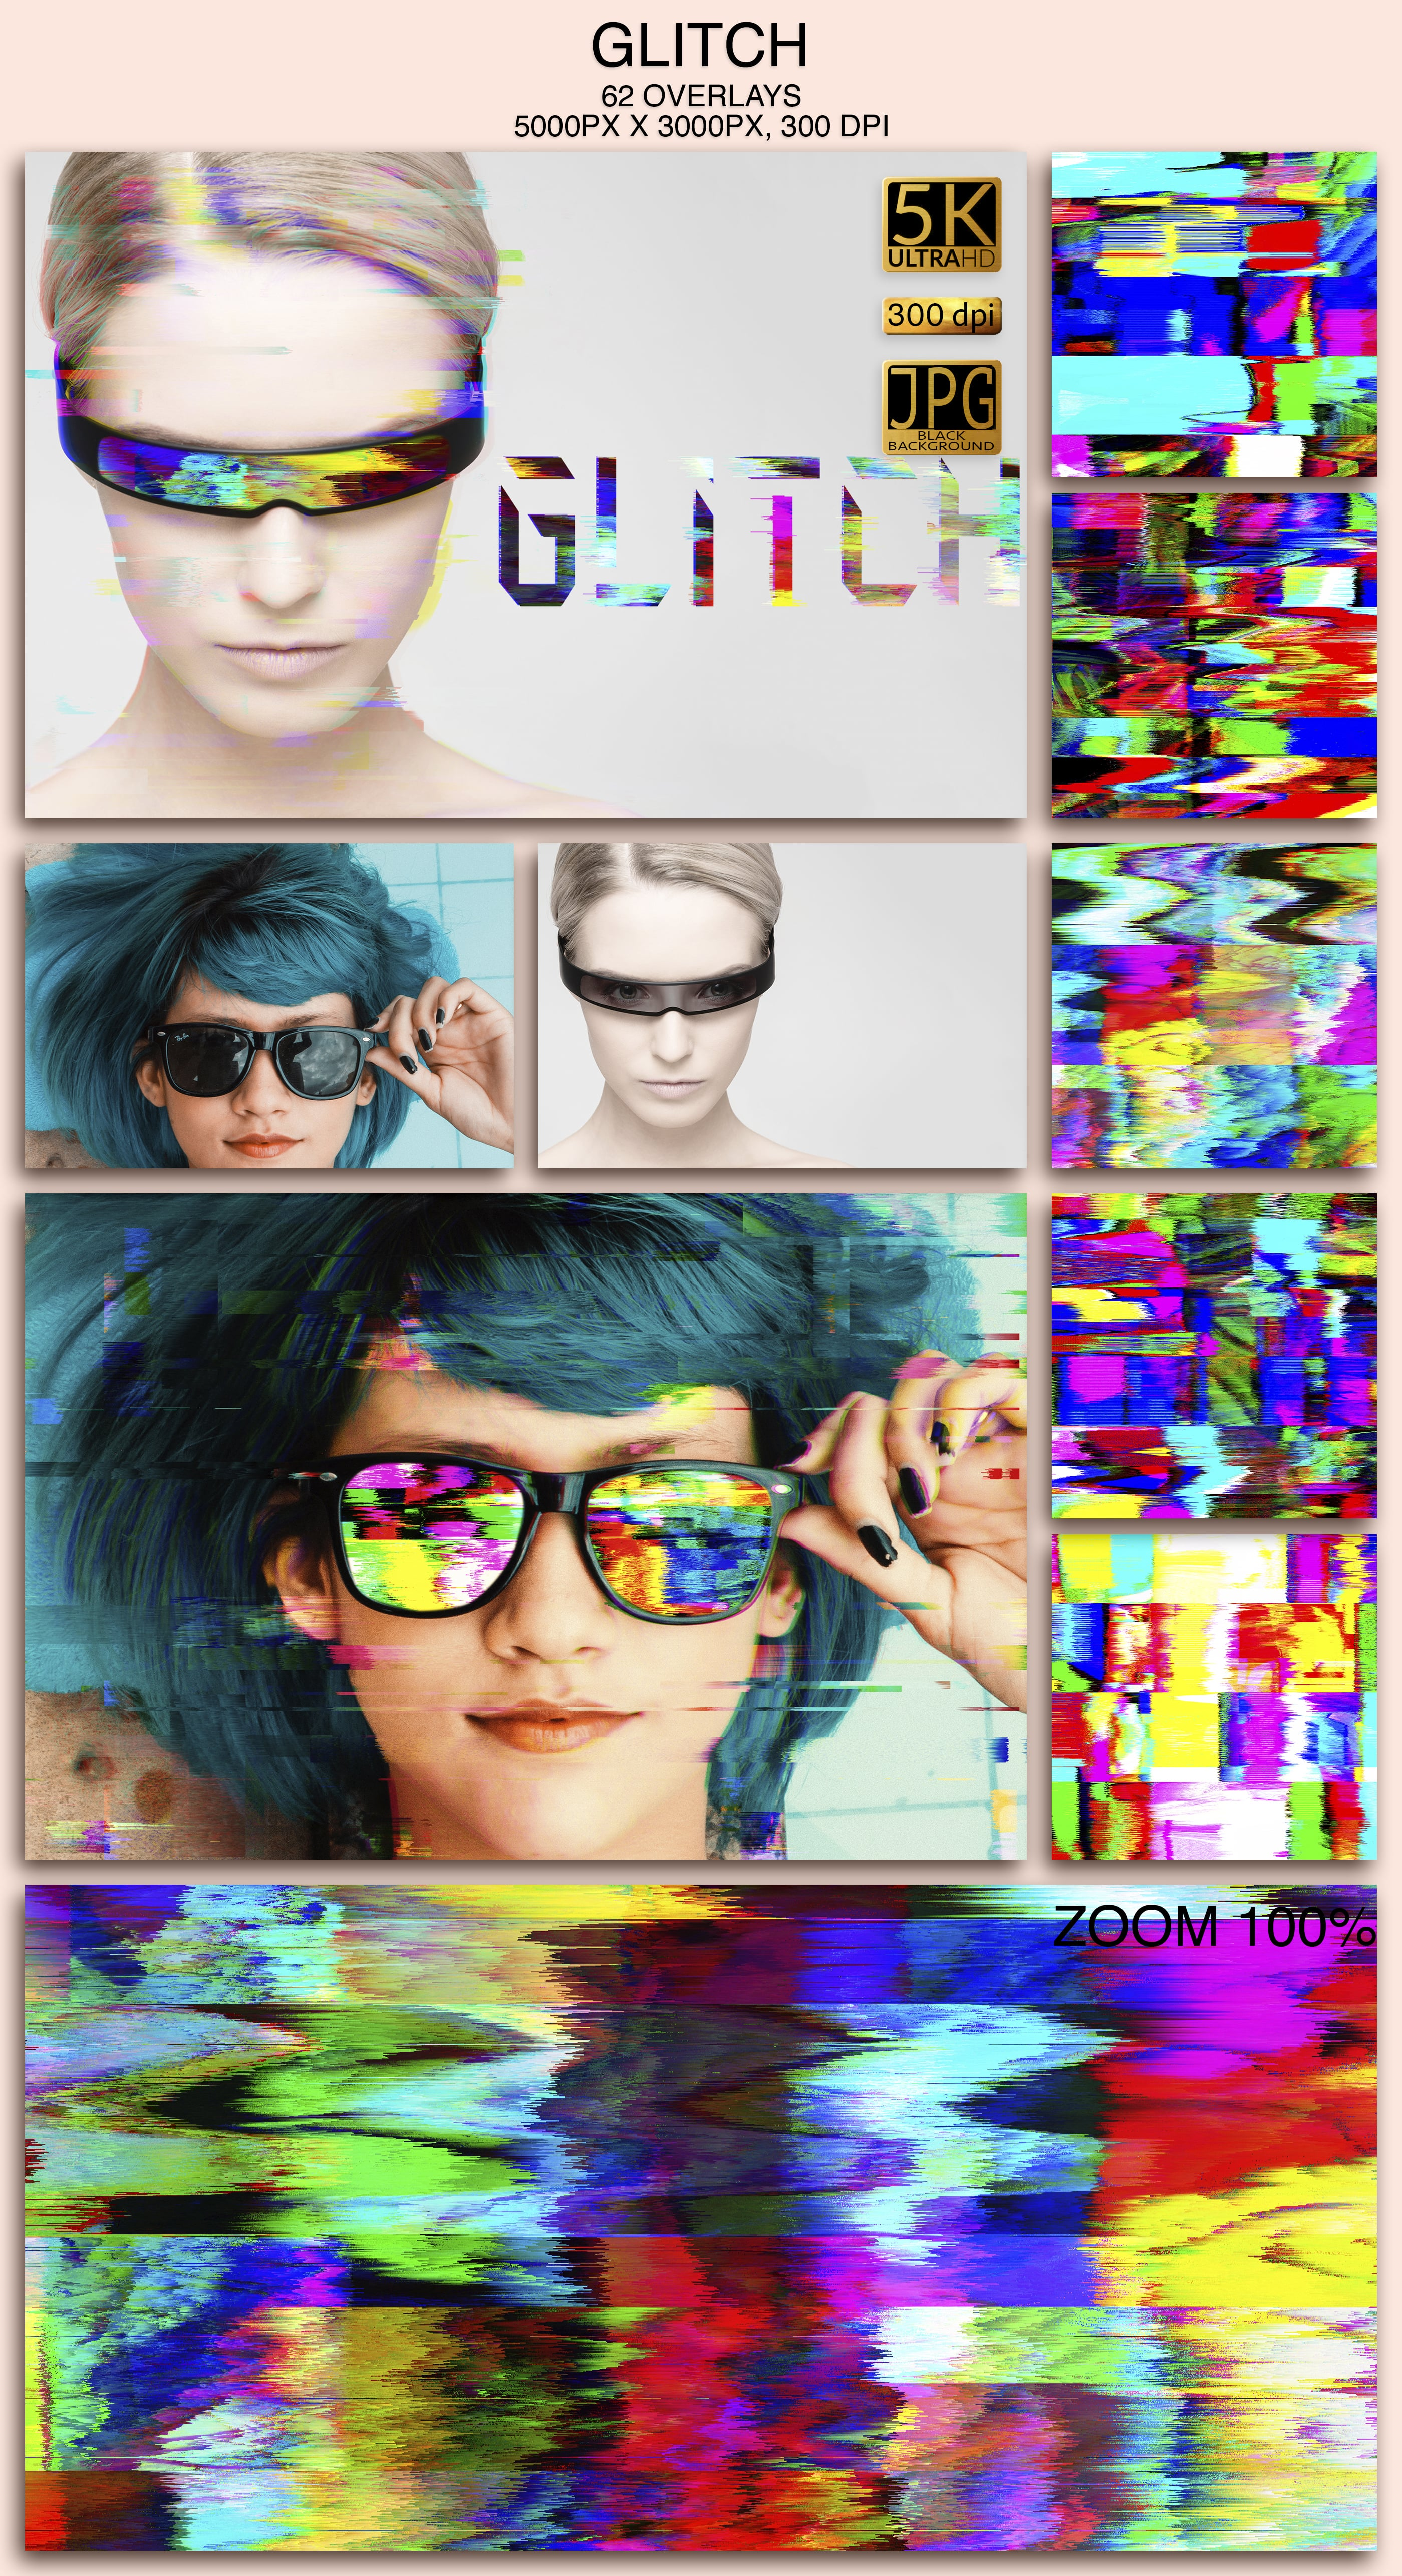 2006 Overlays Photoshop Bundle - Glitch Preview